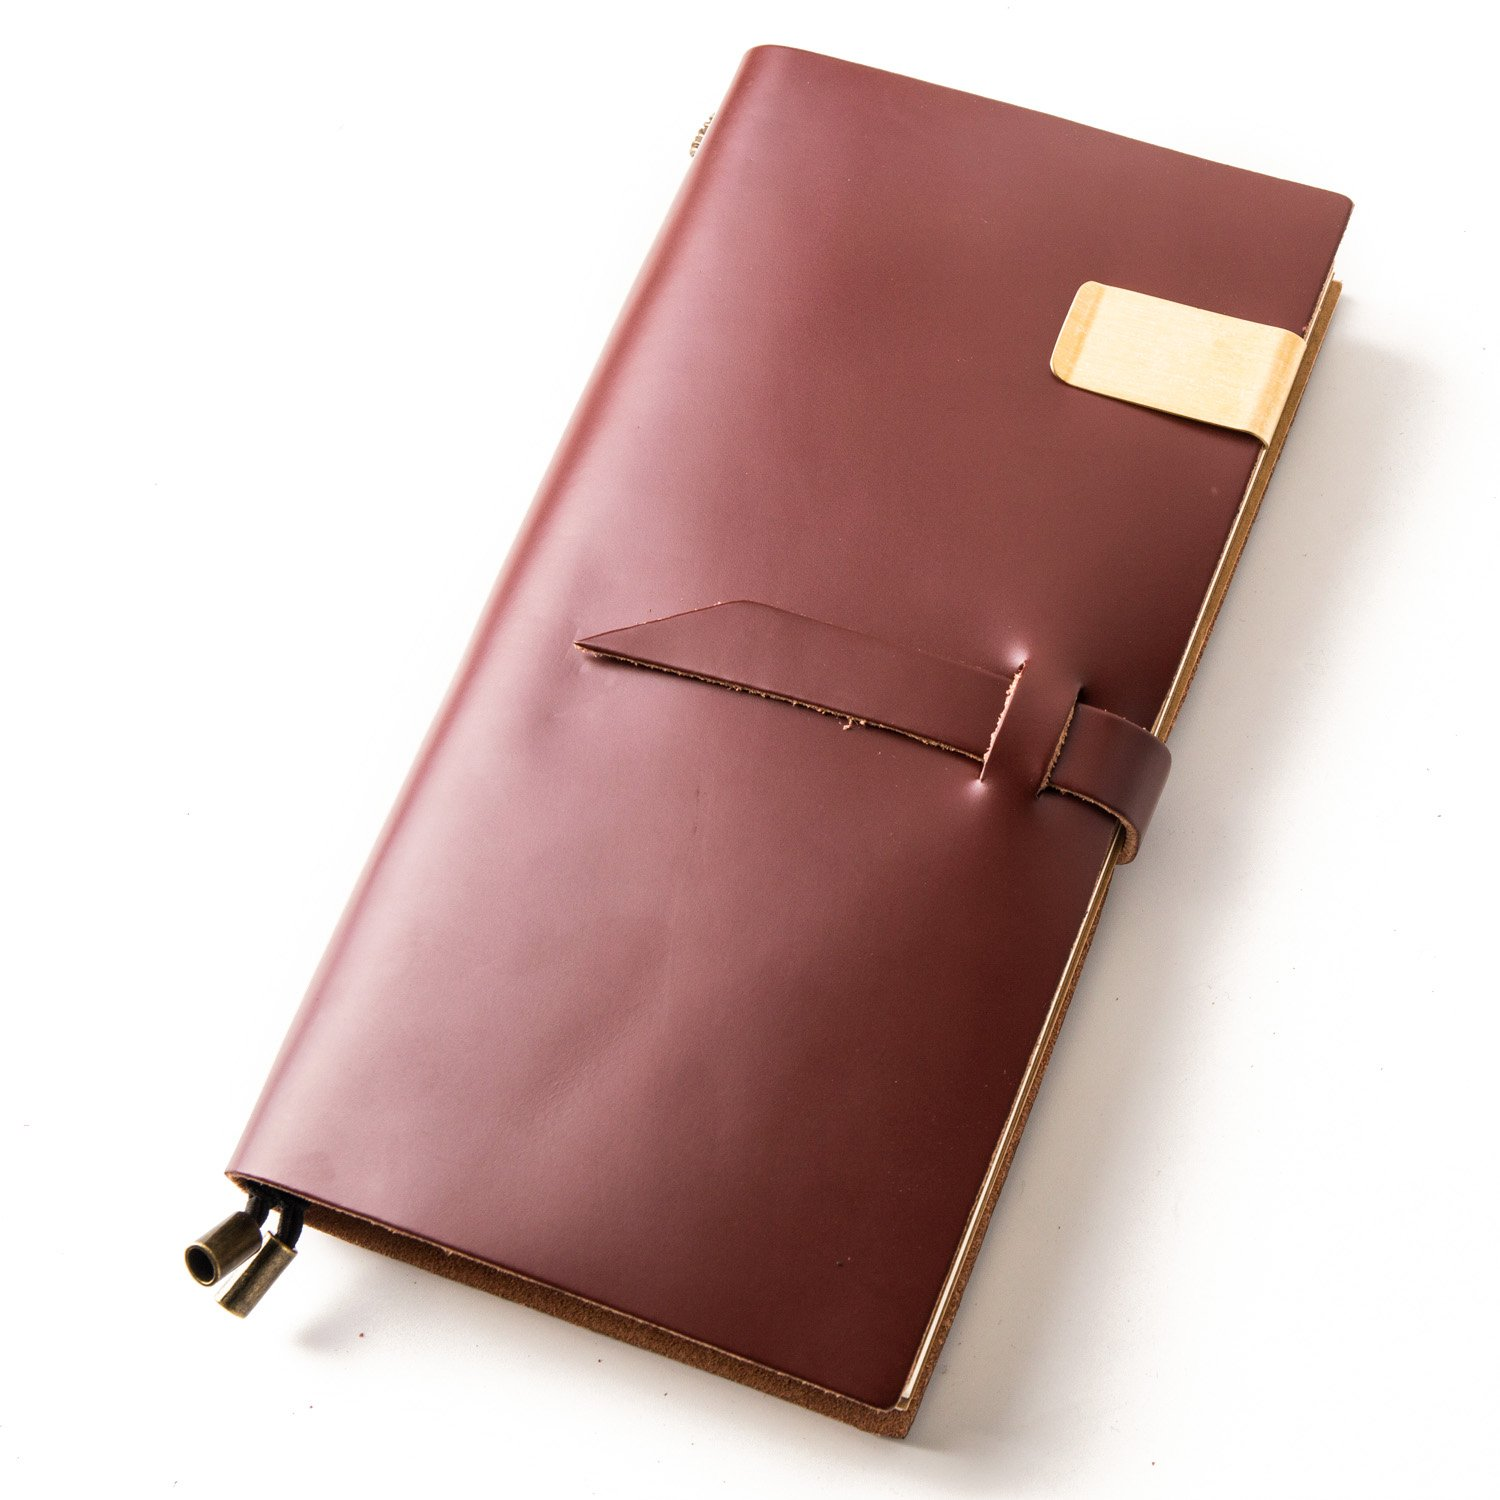 Notebooks and Journals,Leather Travel Diary,Bullet Journals,Refillable Notepad for Men & Women to Write In,Holder Clip Zipper Card Sketching Drawing (Coffee, Standard size)